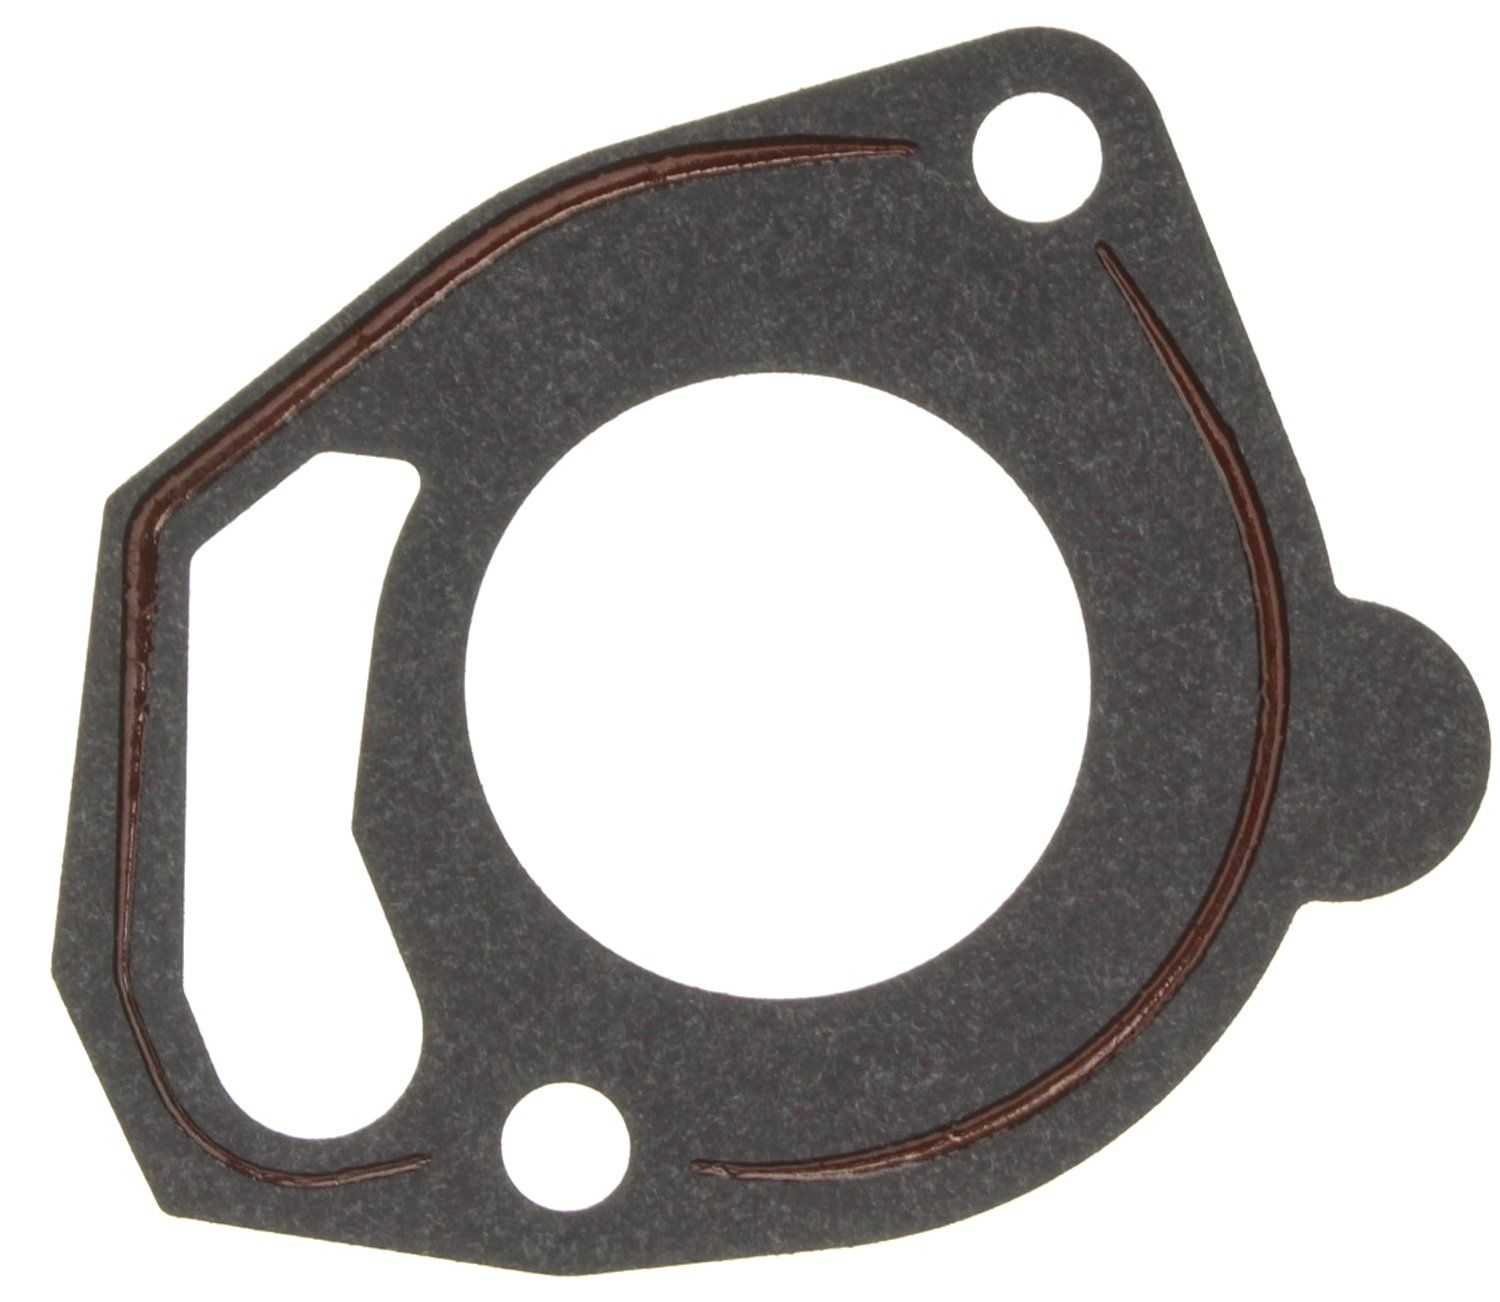 Jeep Wrangler Engine Coolant Outlet Gasket Replacement Felpro 1991 4 Cyl 25l Victor Gaskets C31312 Beaded Paper